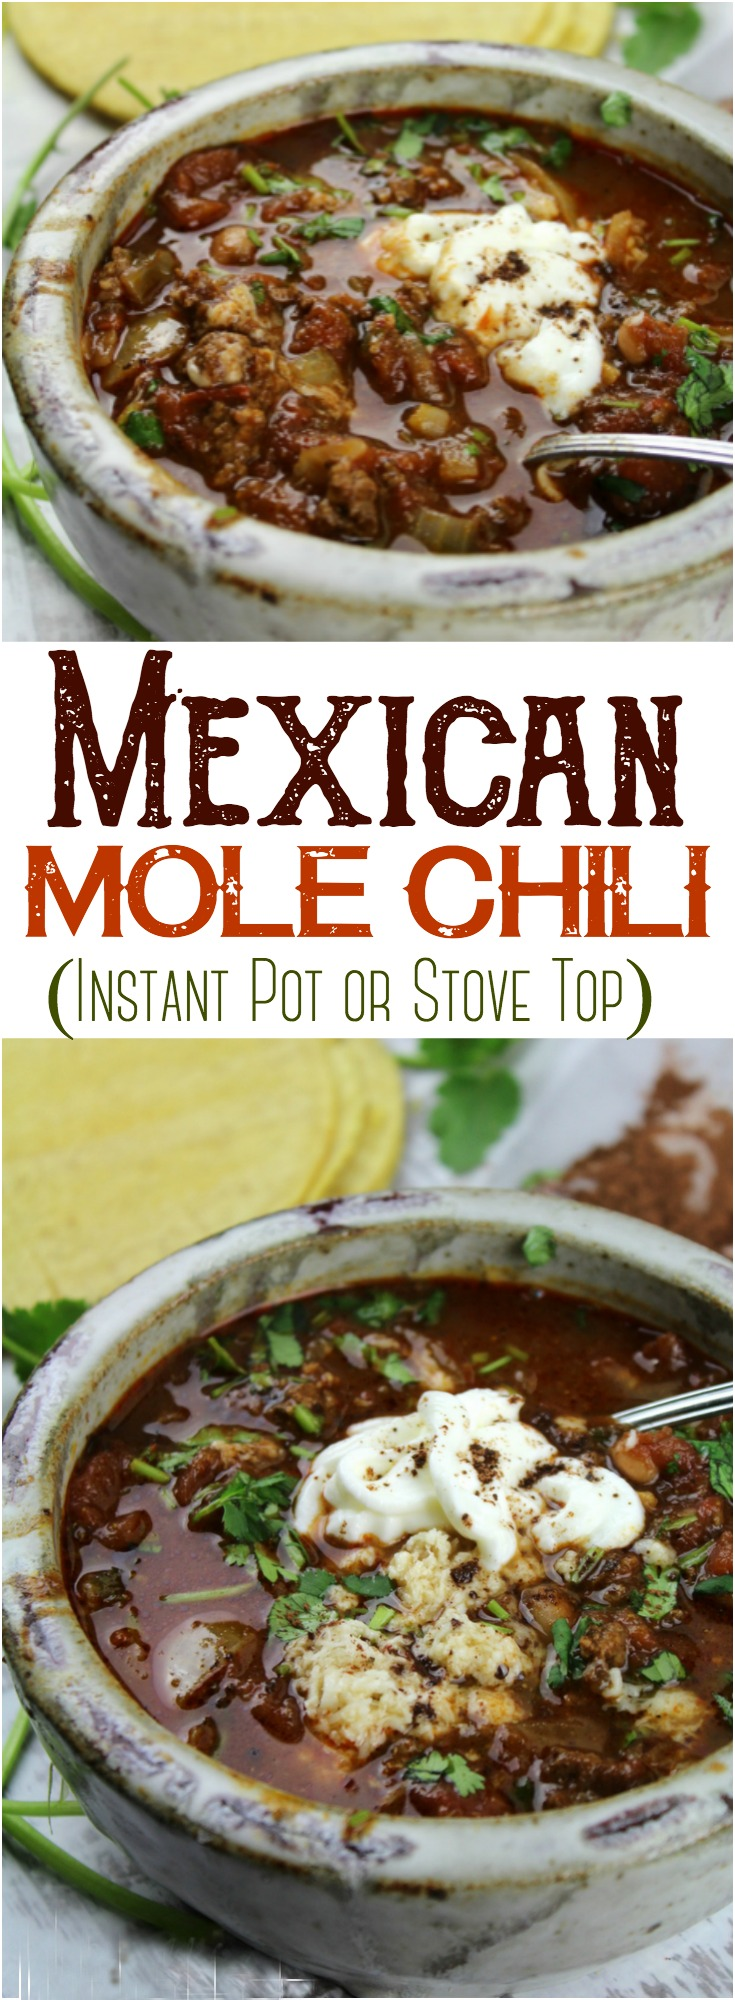 Bitter cocoa balances the zesty salsa and chipotle chili powder in this Mole Chili - made easily in the Instant Pot or on the Stove Top.   #InstantPot #StoveTop #PressureCooker #MexicanFood #Mole #Soup